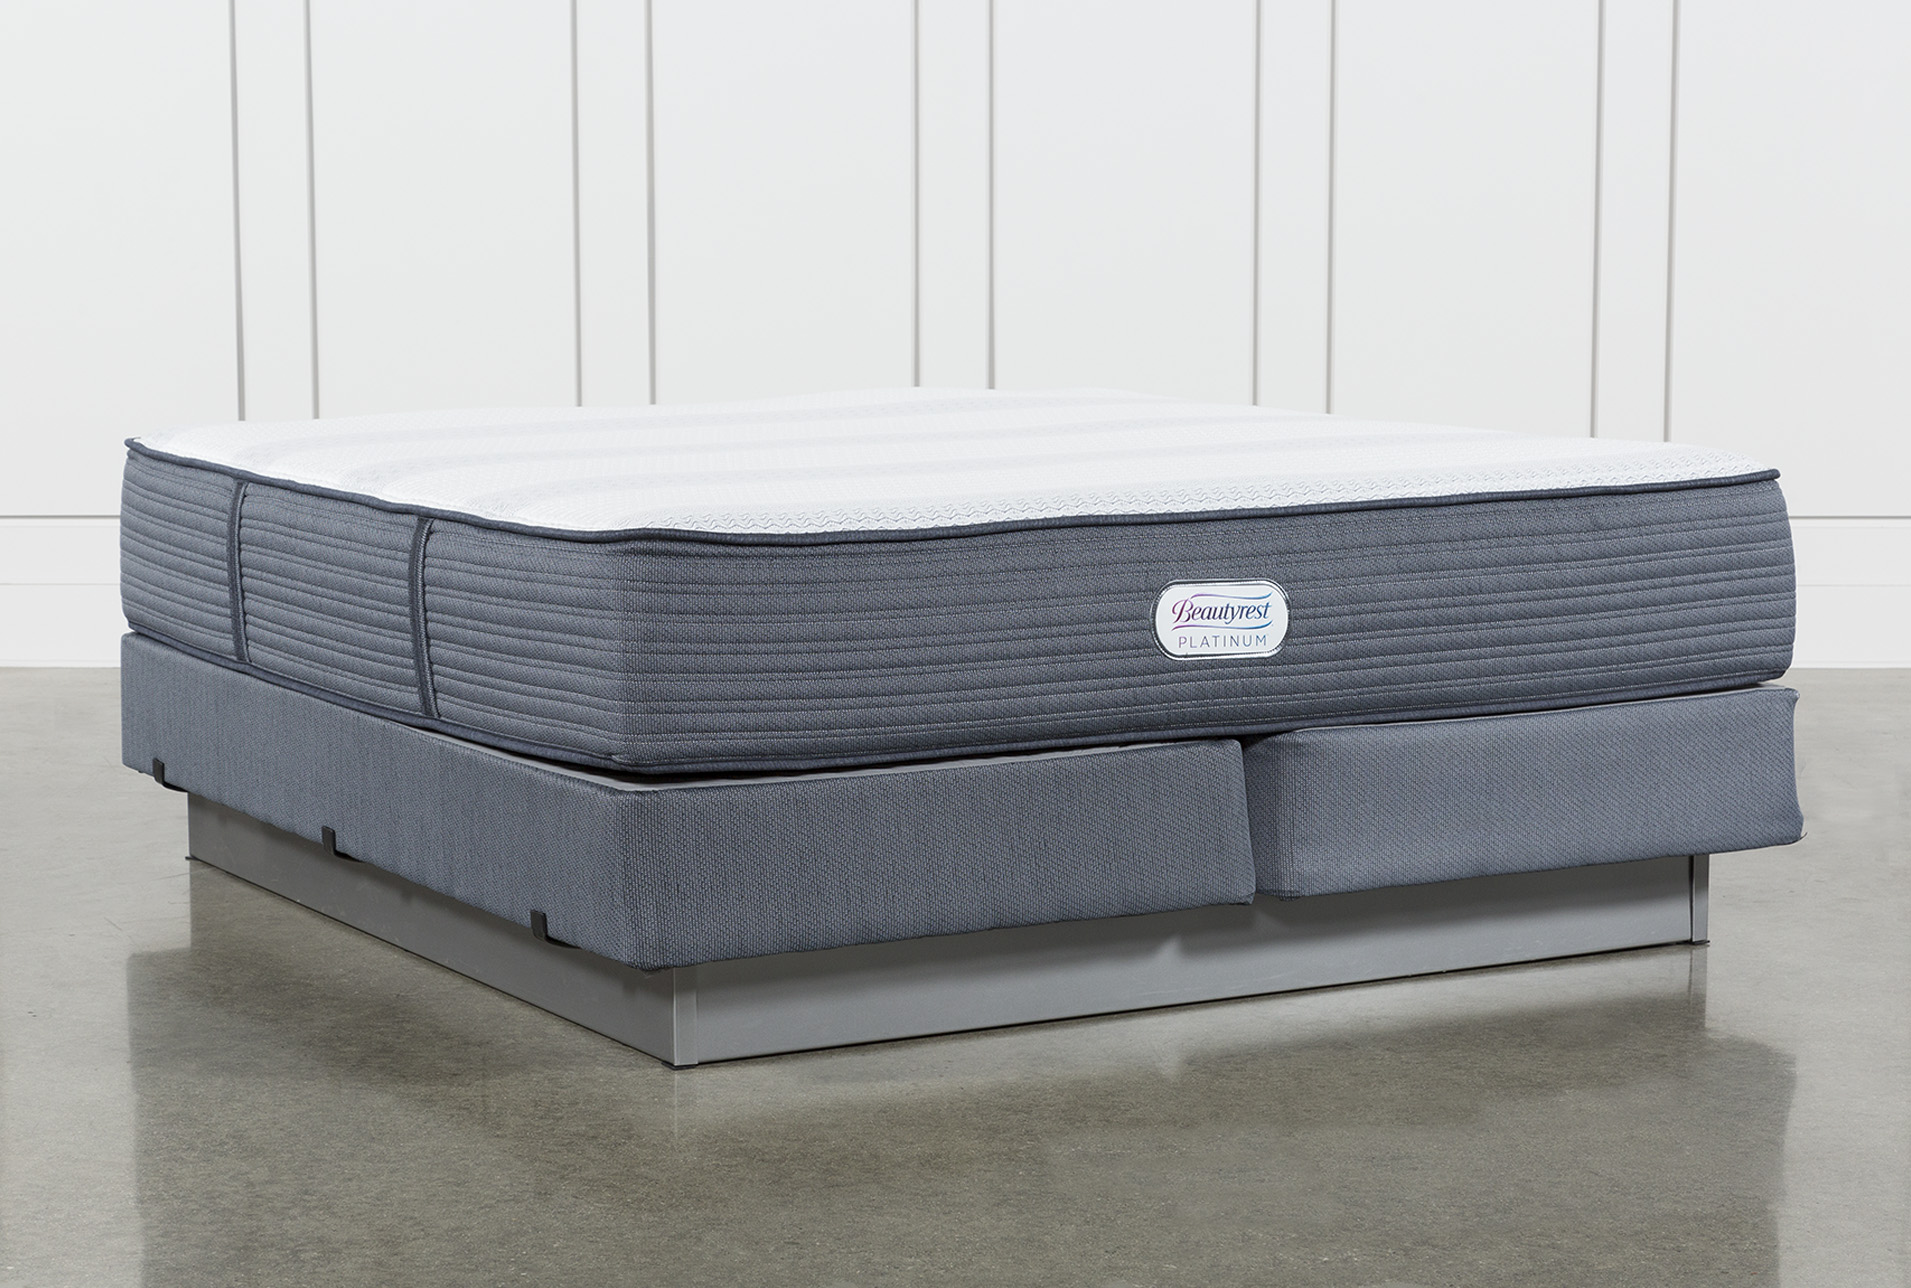 King mattress set Orthopedic Brayton Medium Eastern King Mattress And Foundation qty 1 Has Been Successfully Added To Your Cart Living Spaces Brayton Medium Eastern King Mattress And Foundation Living Spaces